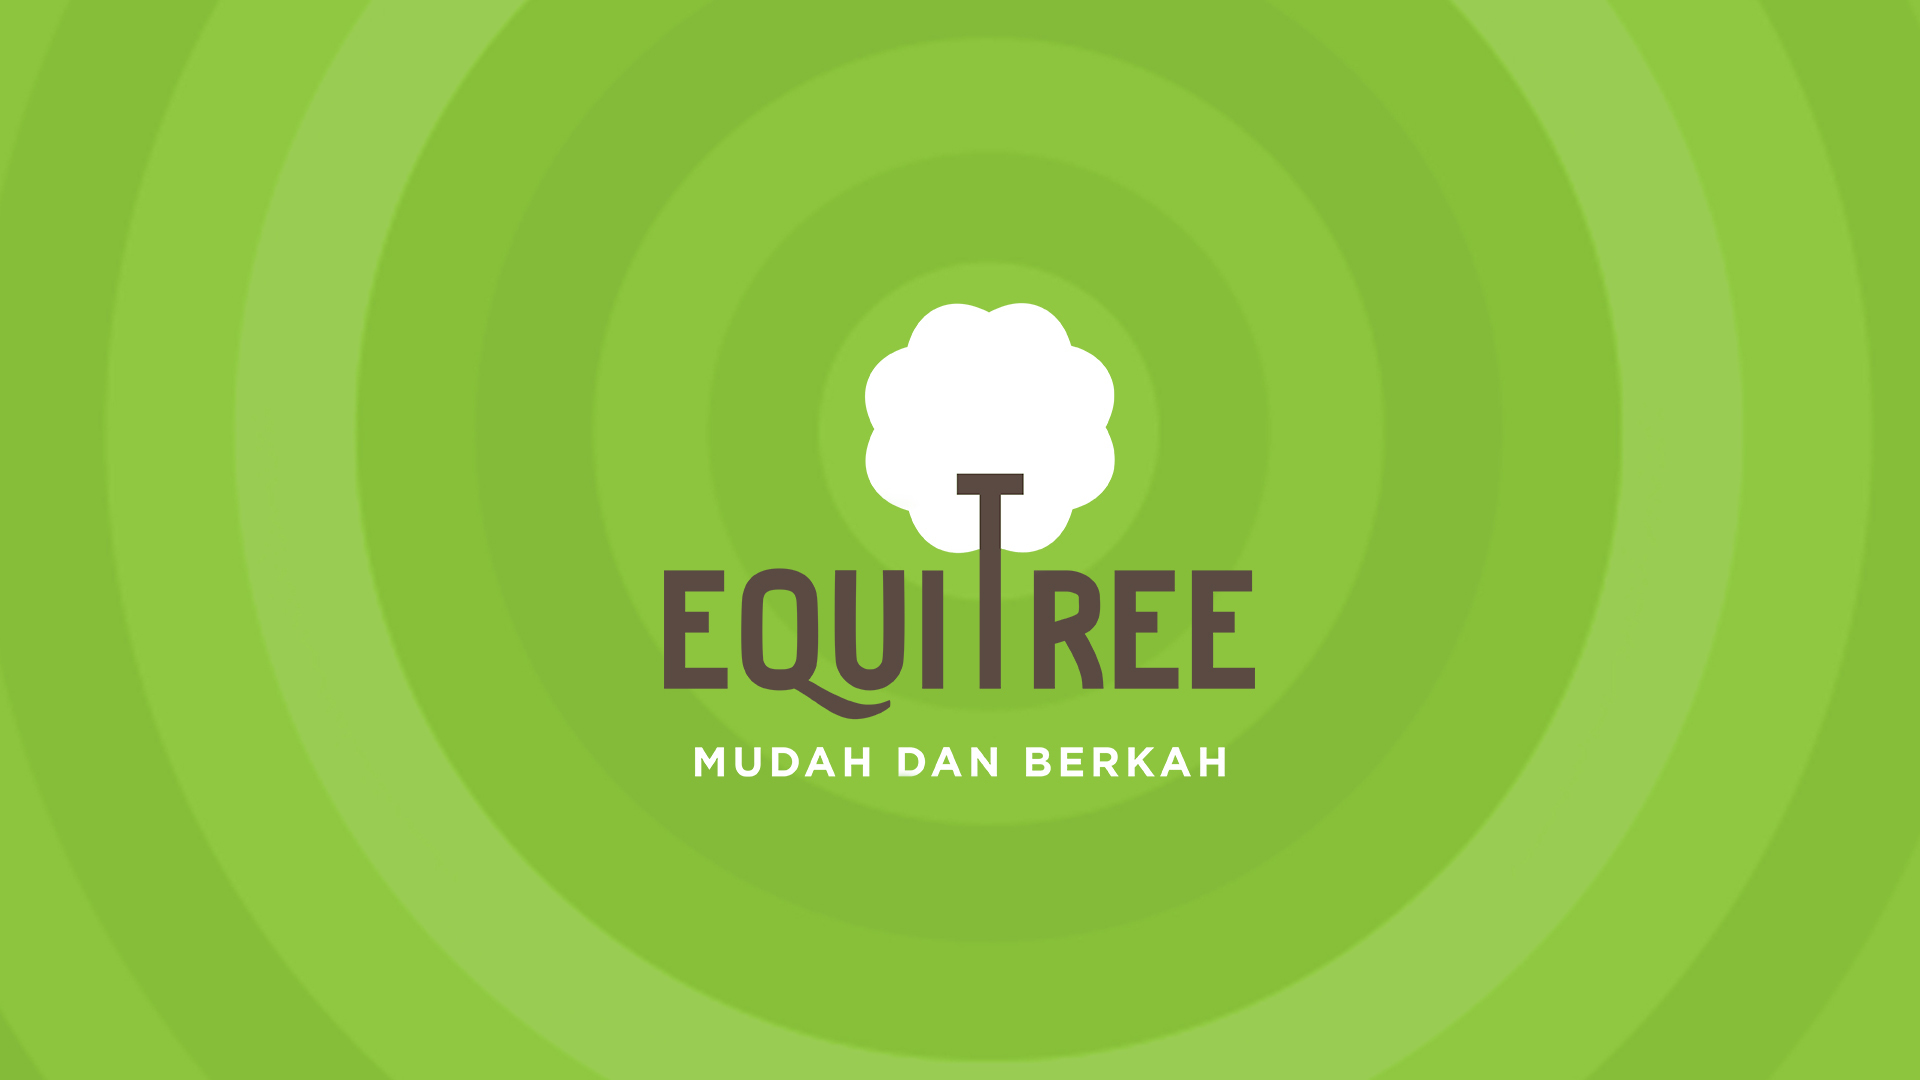 Equitree